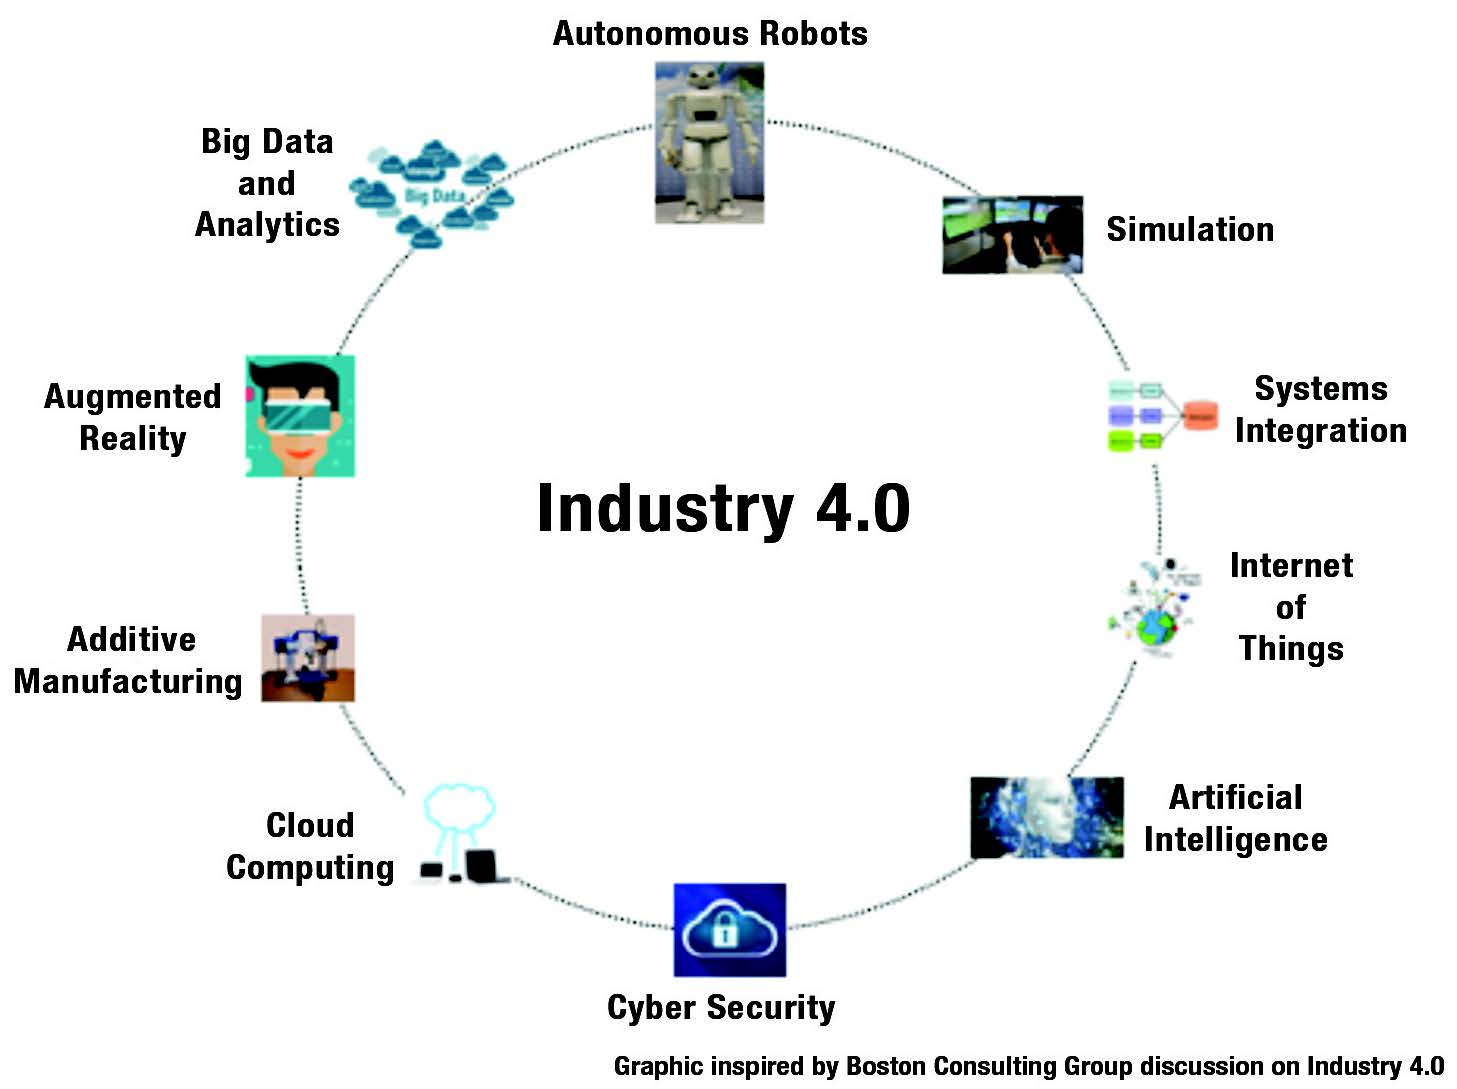 Industry 4.0 concept